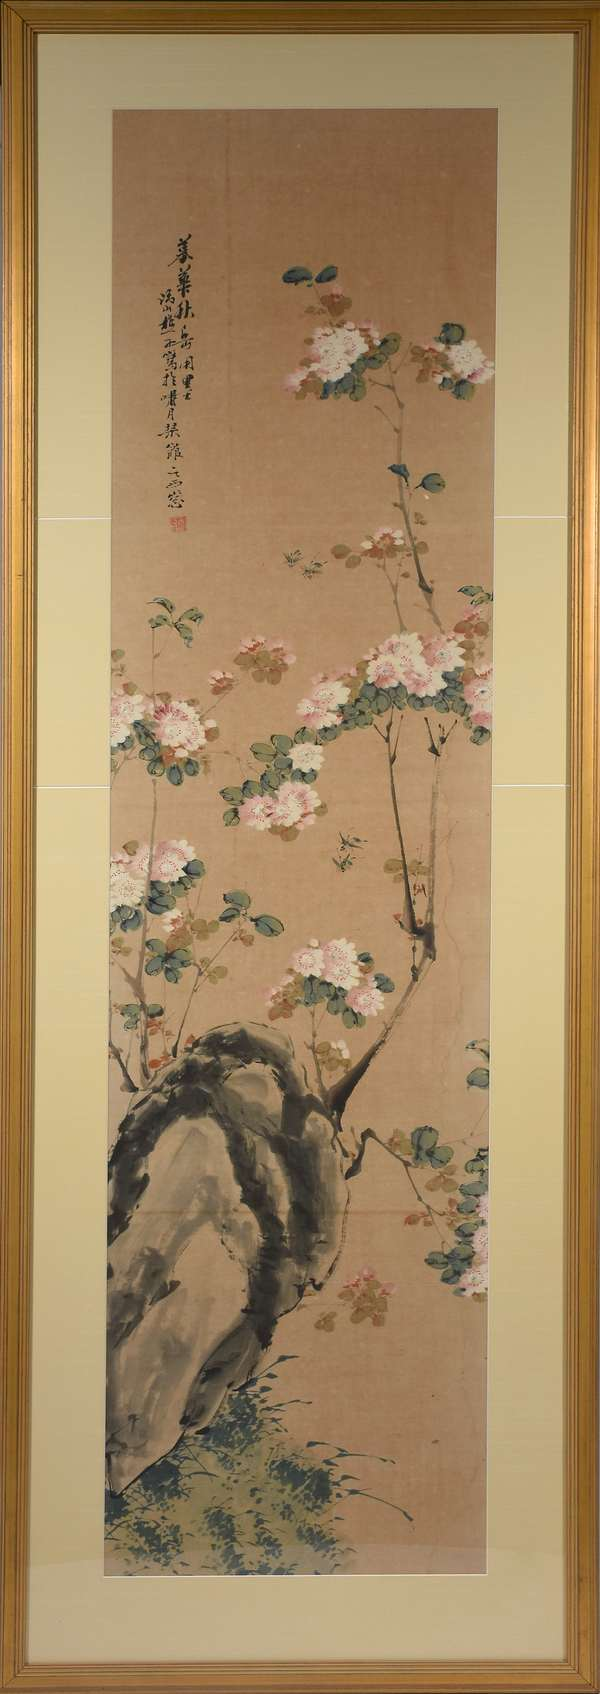 """Large Chinese watercolor and gouache on paper, of cherry blossom branch, and bees, artist signed upper left, sight size 65.5""""H. x 16""""W., matted and framed, 75.5""""H. x 25.5""""W. overall."""